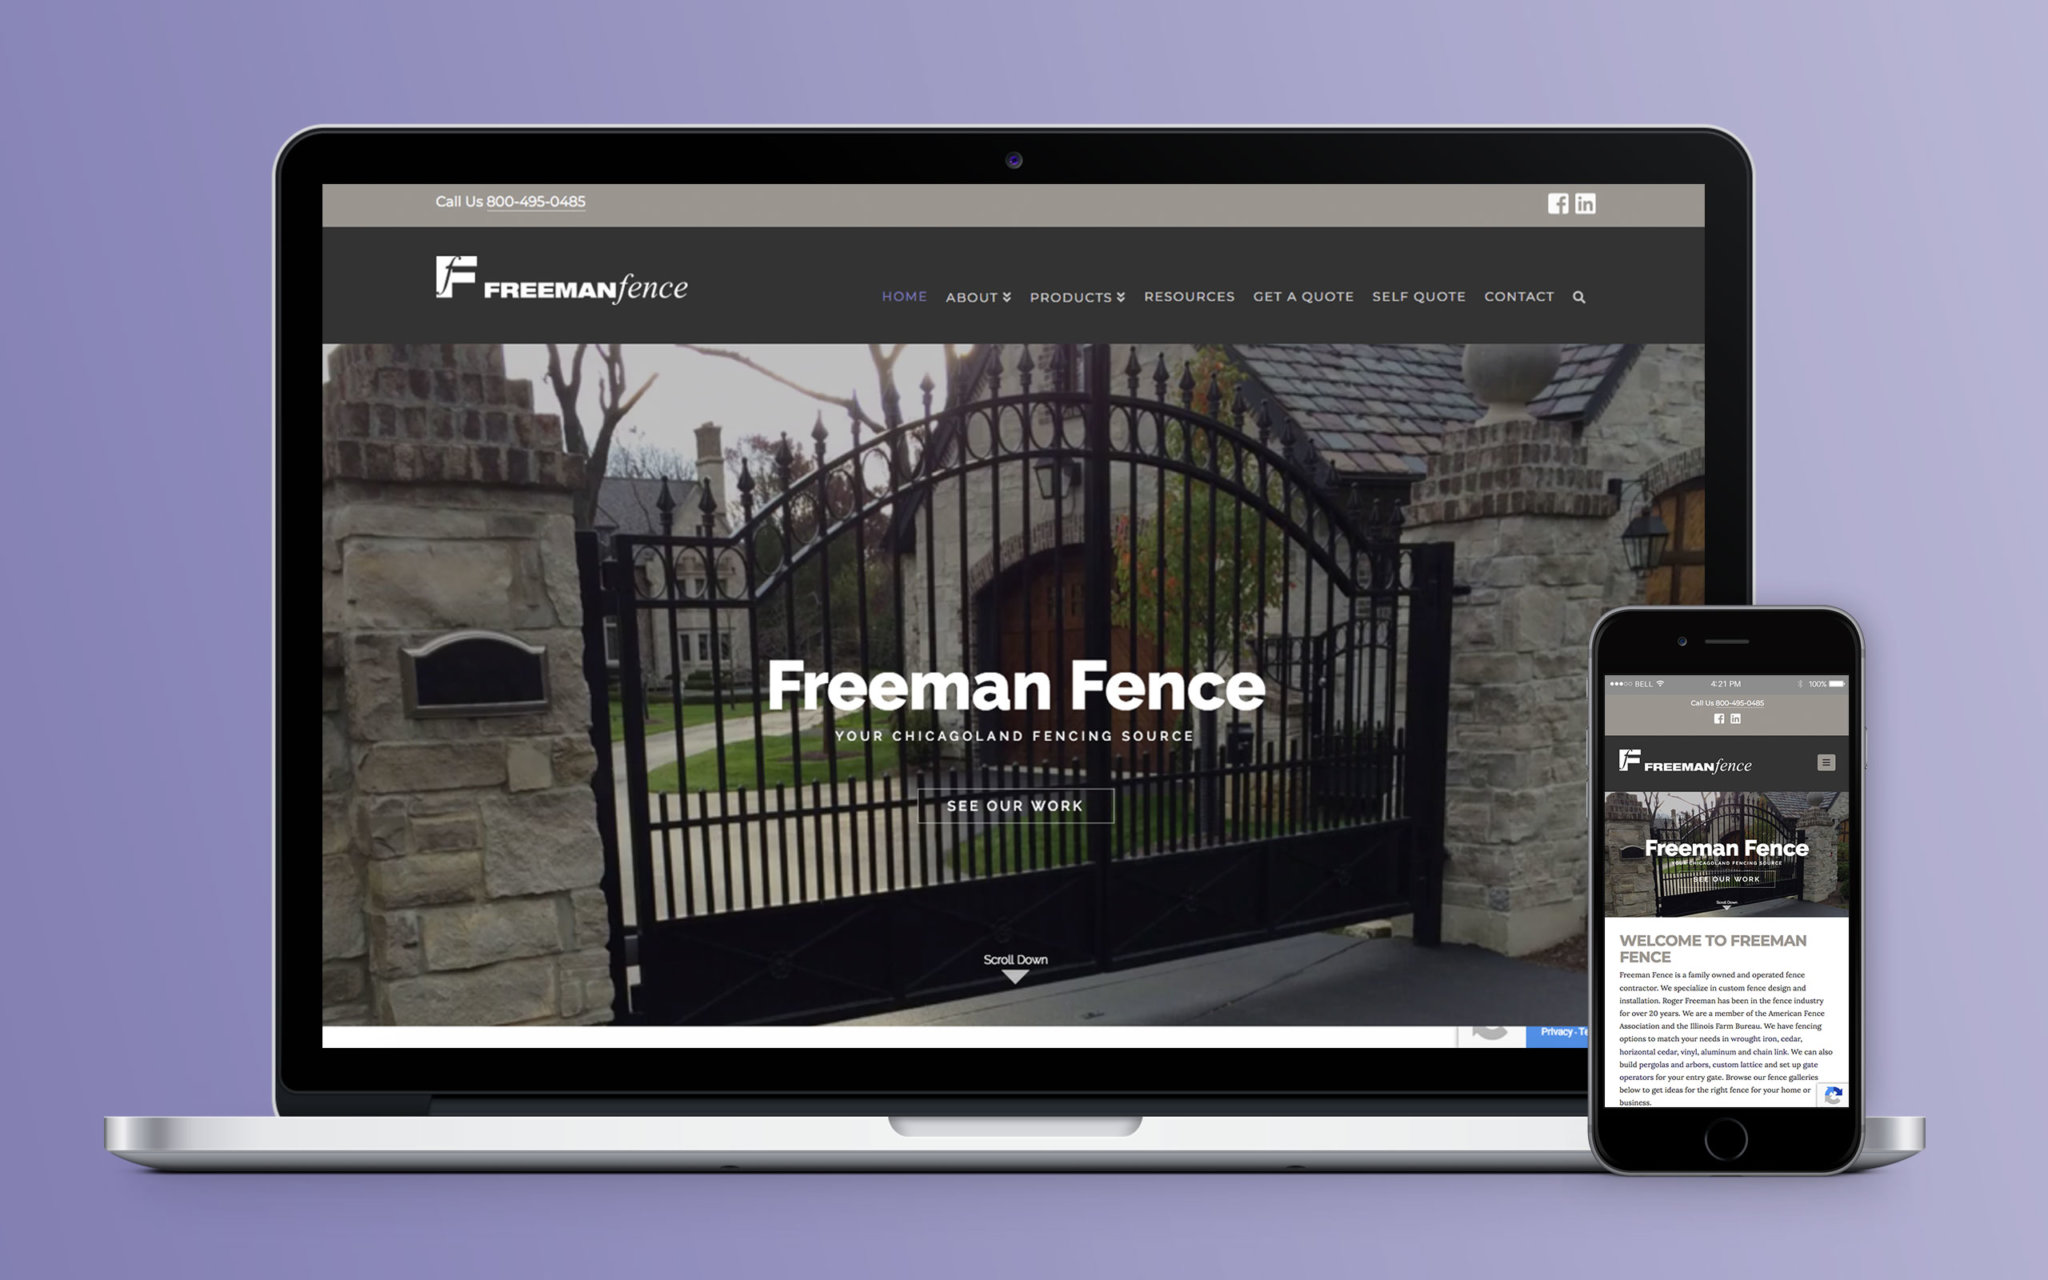 Freeman Fence Website Home